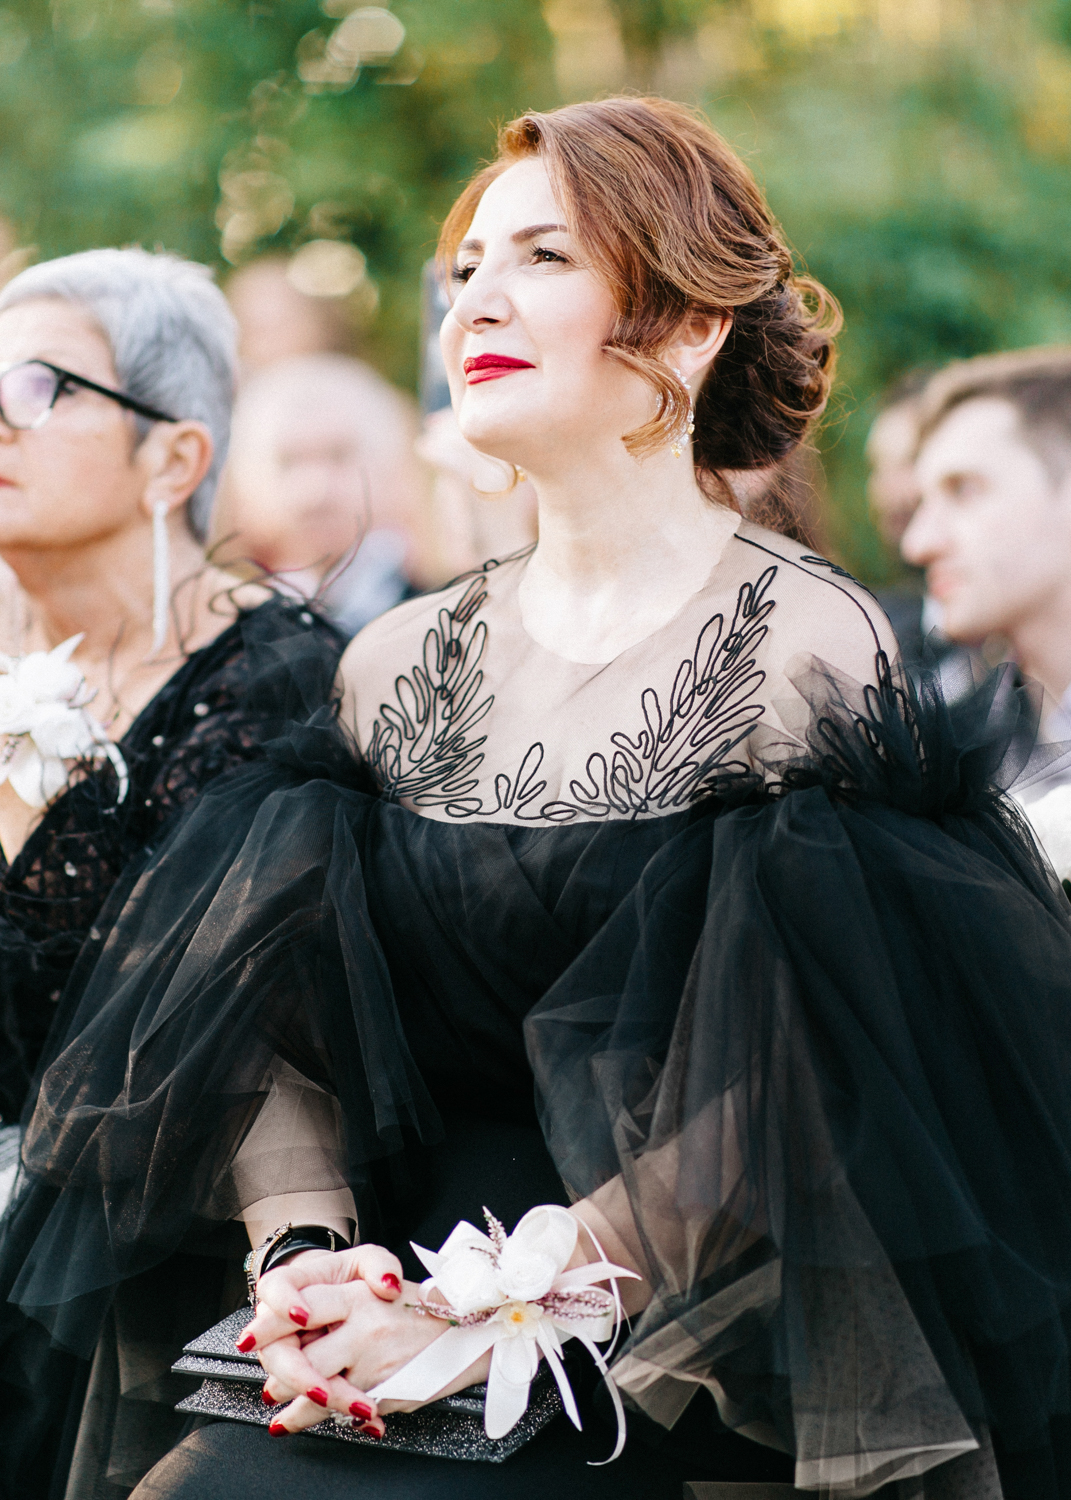 masha golub photography 52 - FLORENCE WEDDING